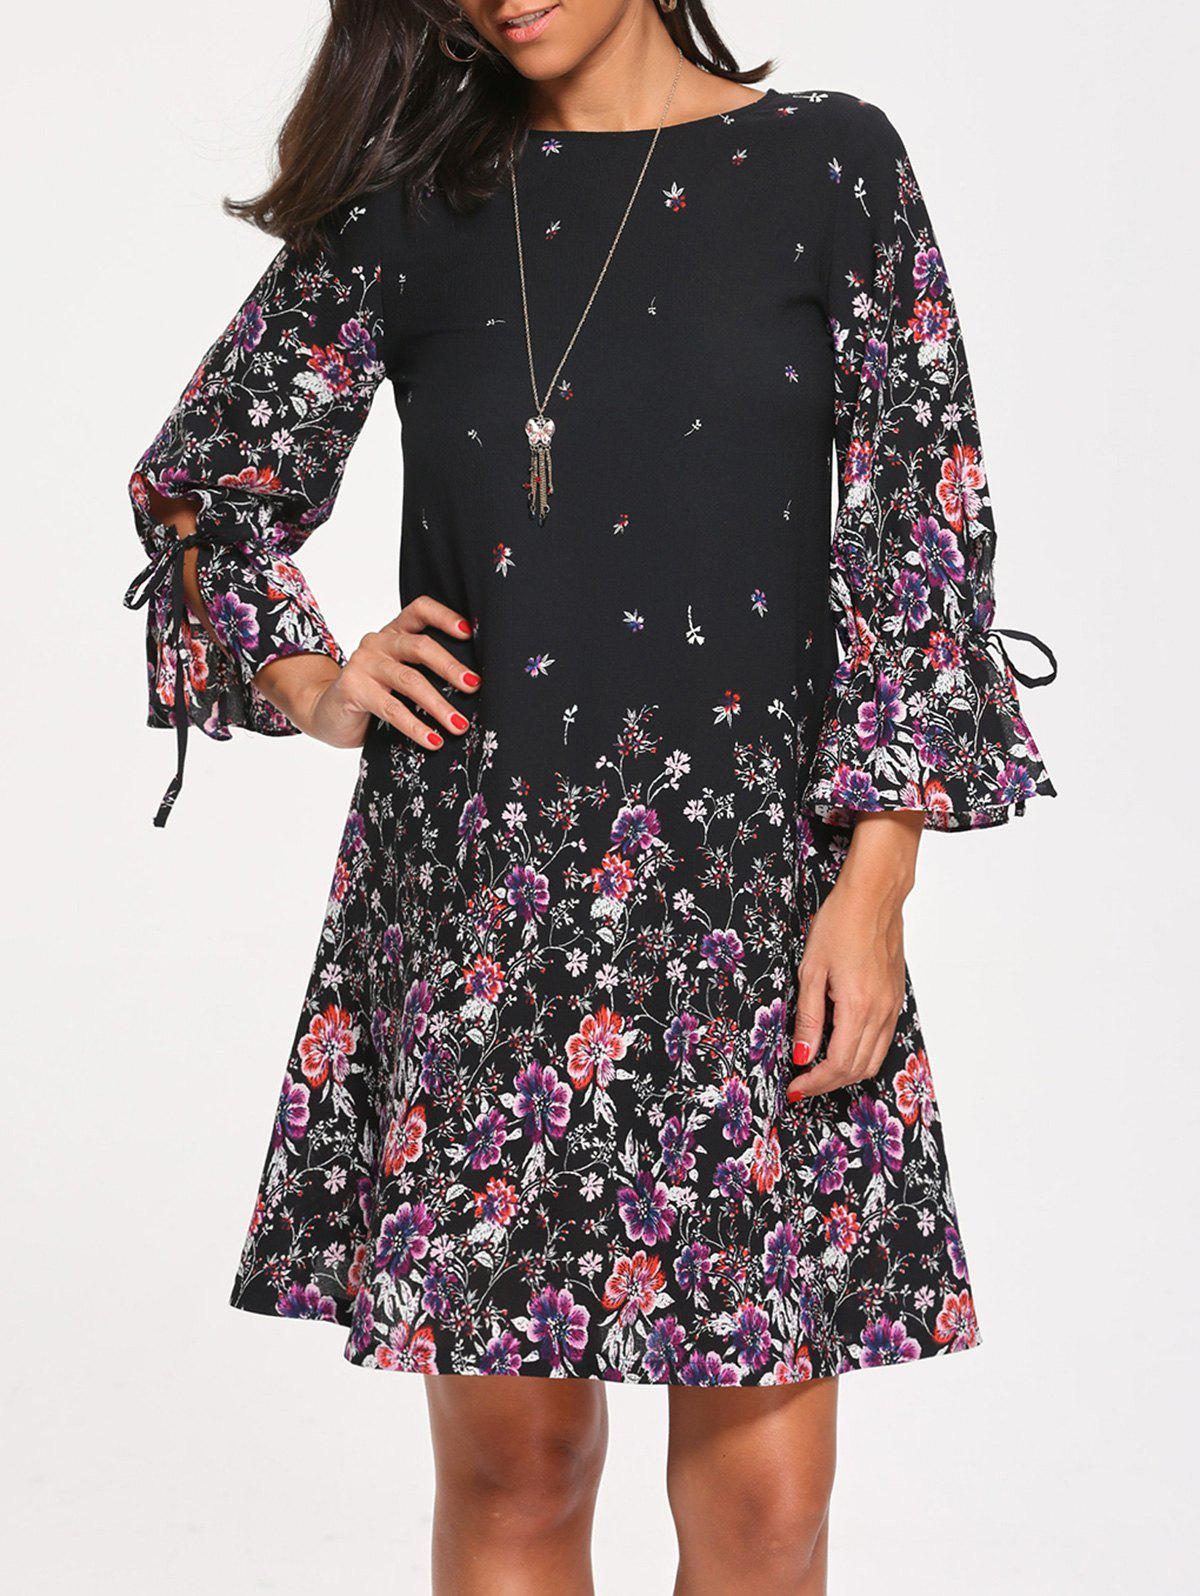 Three Quarter Sleeve Tiny Floral Print DressWOMEN<br><br>Size: XL; Color: BLACK; Style: Casual; Material: Polyester; Silhouette: Shift; Dress Type: Tunic Dress; Dresses Length: Knee-Length; Neckline: Round Collar; Sleeve Length: 3/4 Length Sleeves; Waist: Natural; Pattern Type: Floral,Print; With Belt: No; Season: Fall,Spring; Weight: 0.2700kg; Package Contents: 1 x Dress;